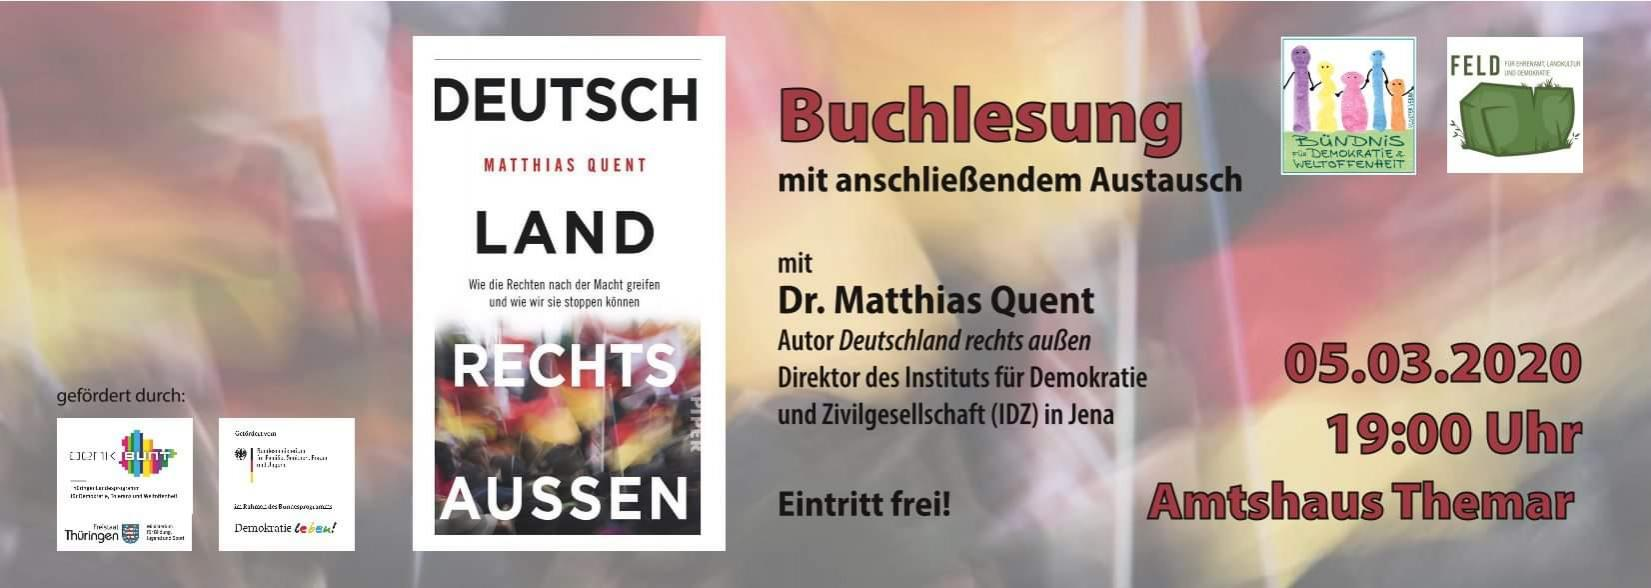 5.3.2020 Buchlesung Quent